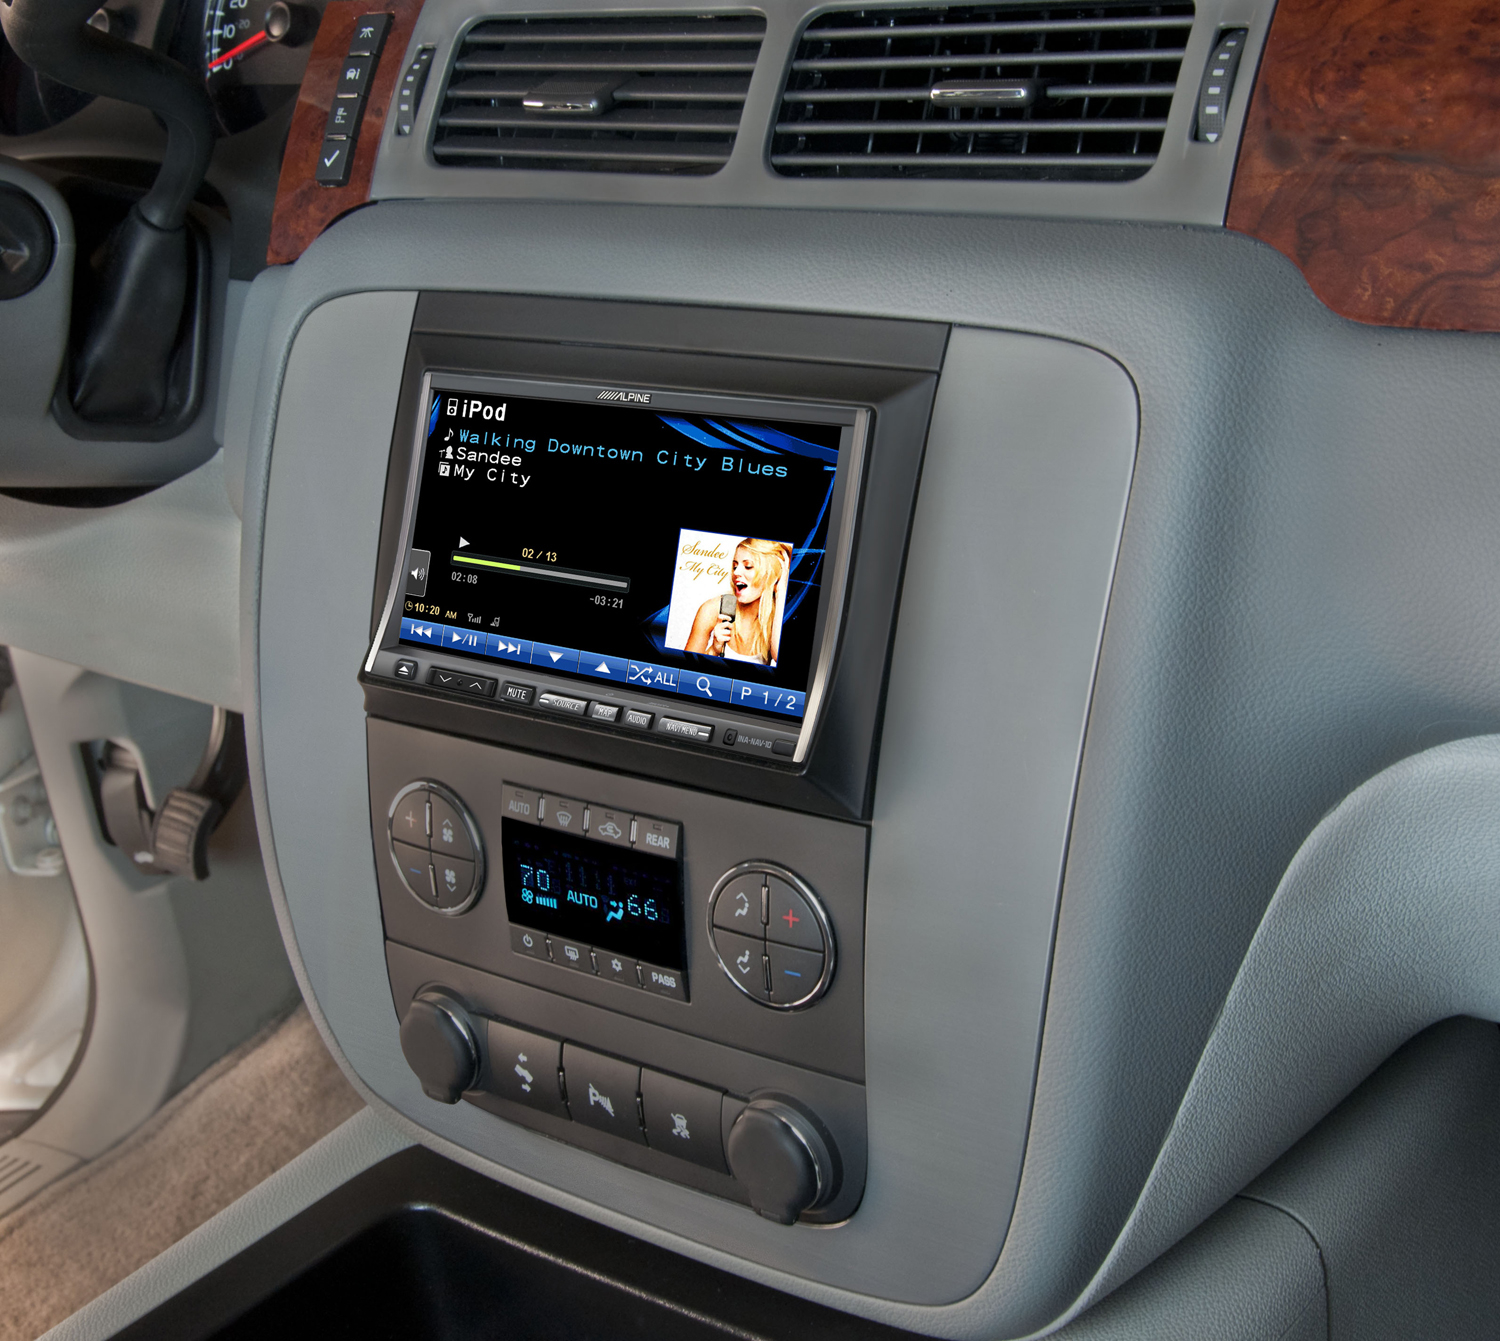 2004 Ford Focus Stereo Wiring Diagram Car Stereo Chick Gets You A Sneak Peak At New Alpine